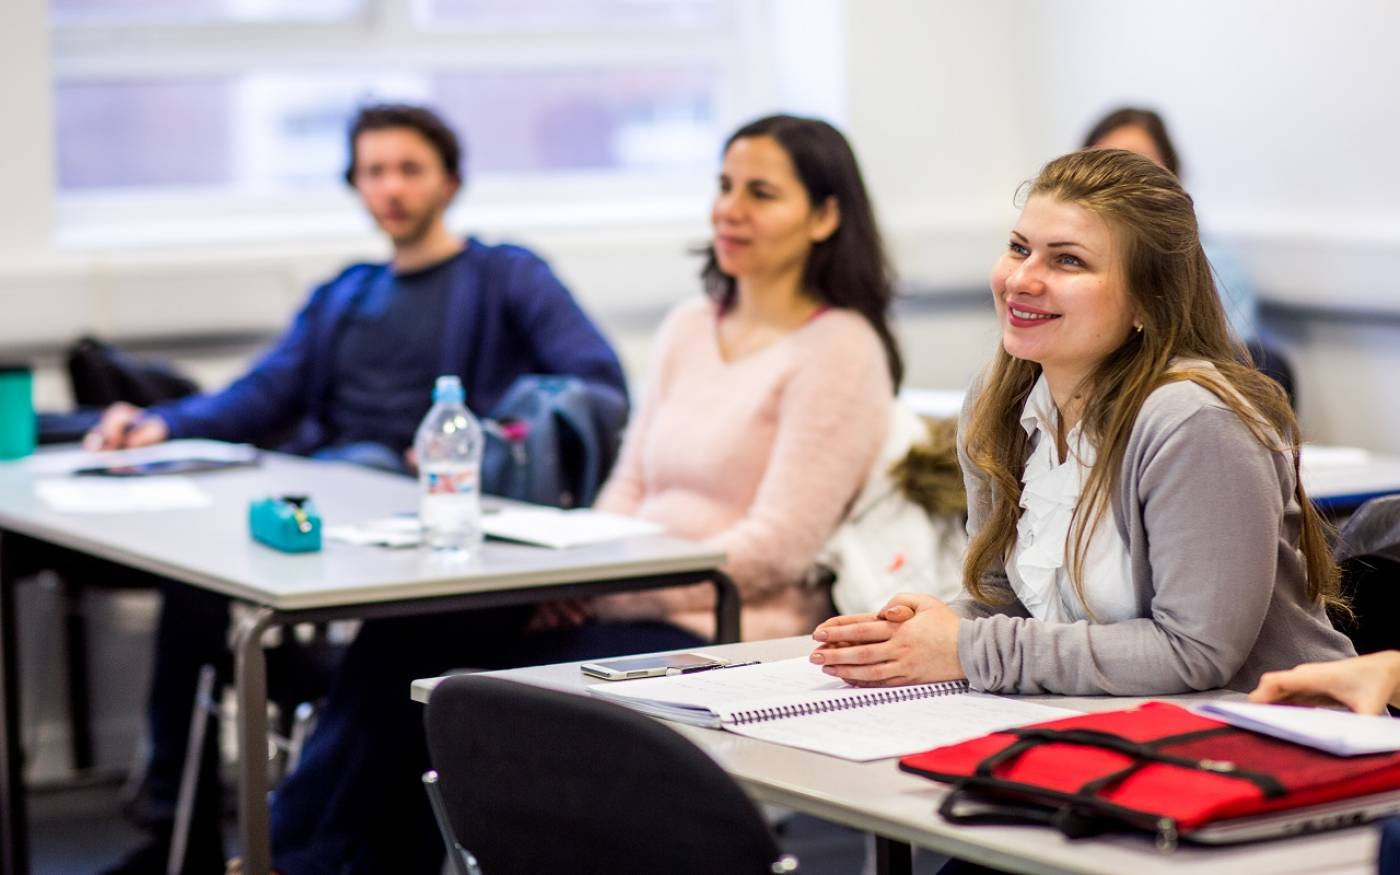 course_units_student_smiling_in_class